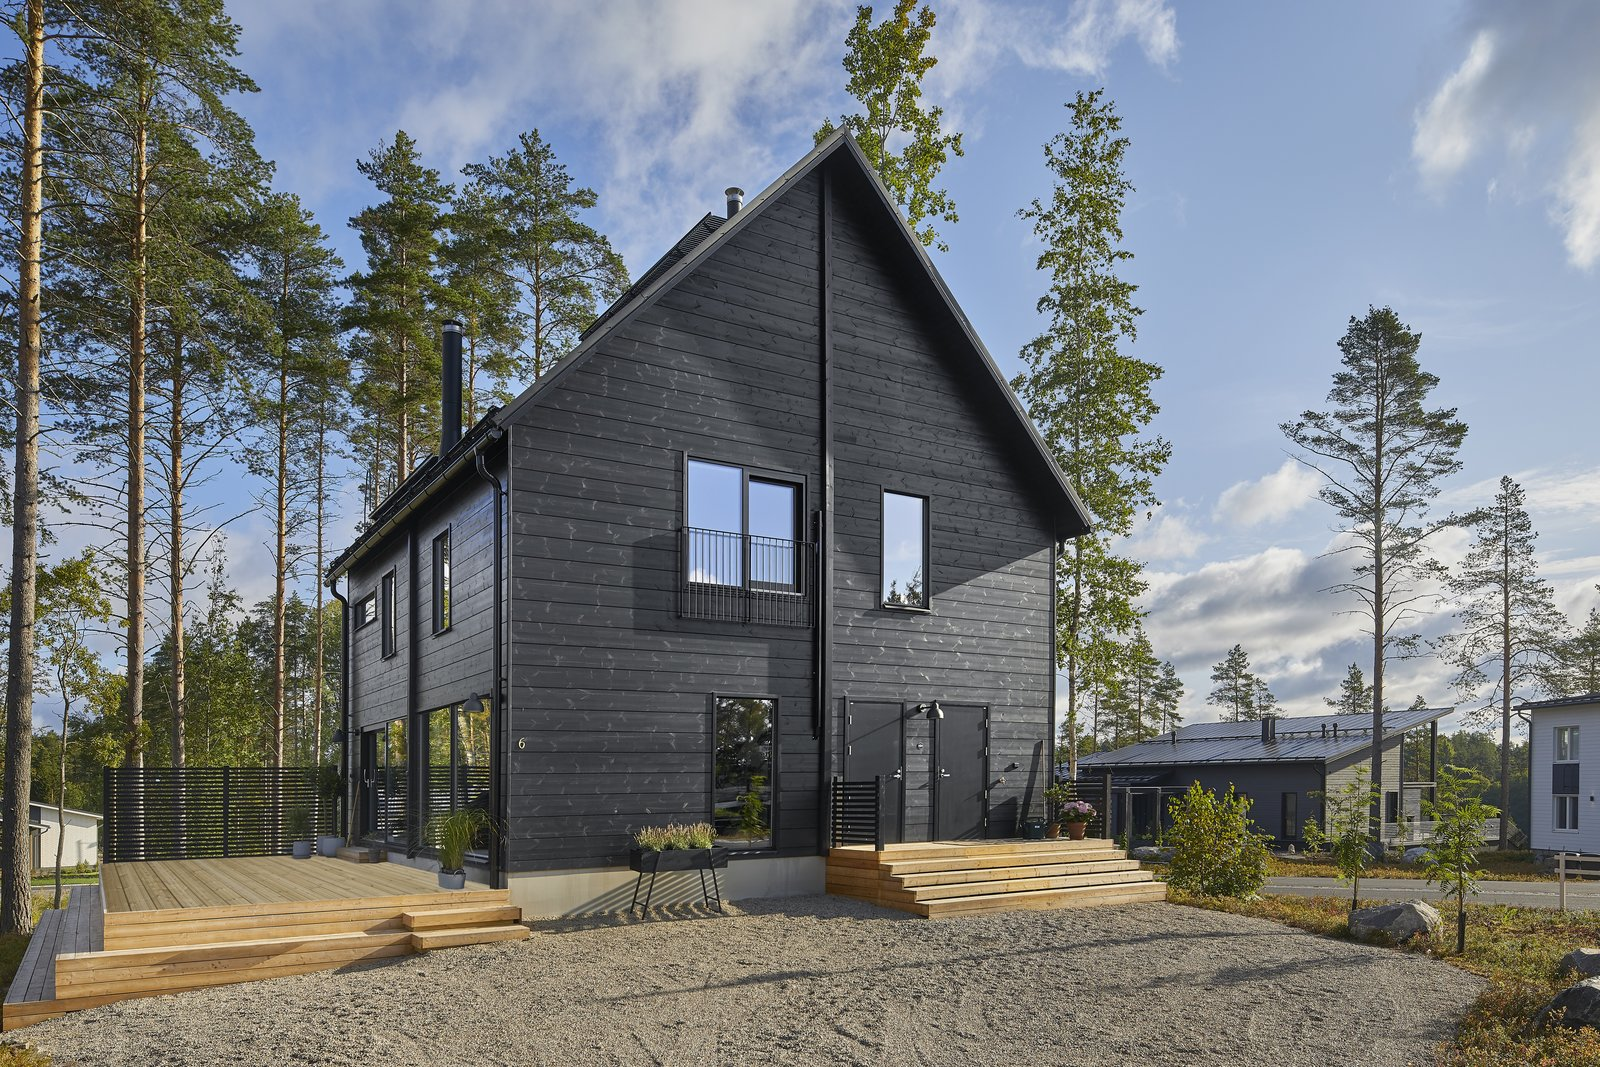 This house has a sauna and four bedrooms, including a master bedroom on the second level that looks down onto the lake.